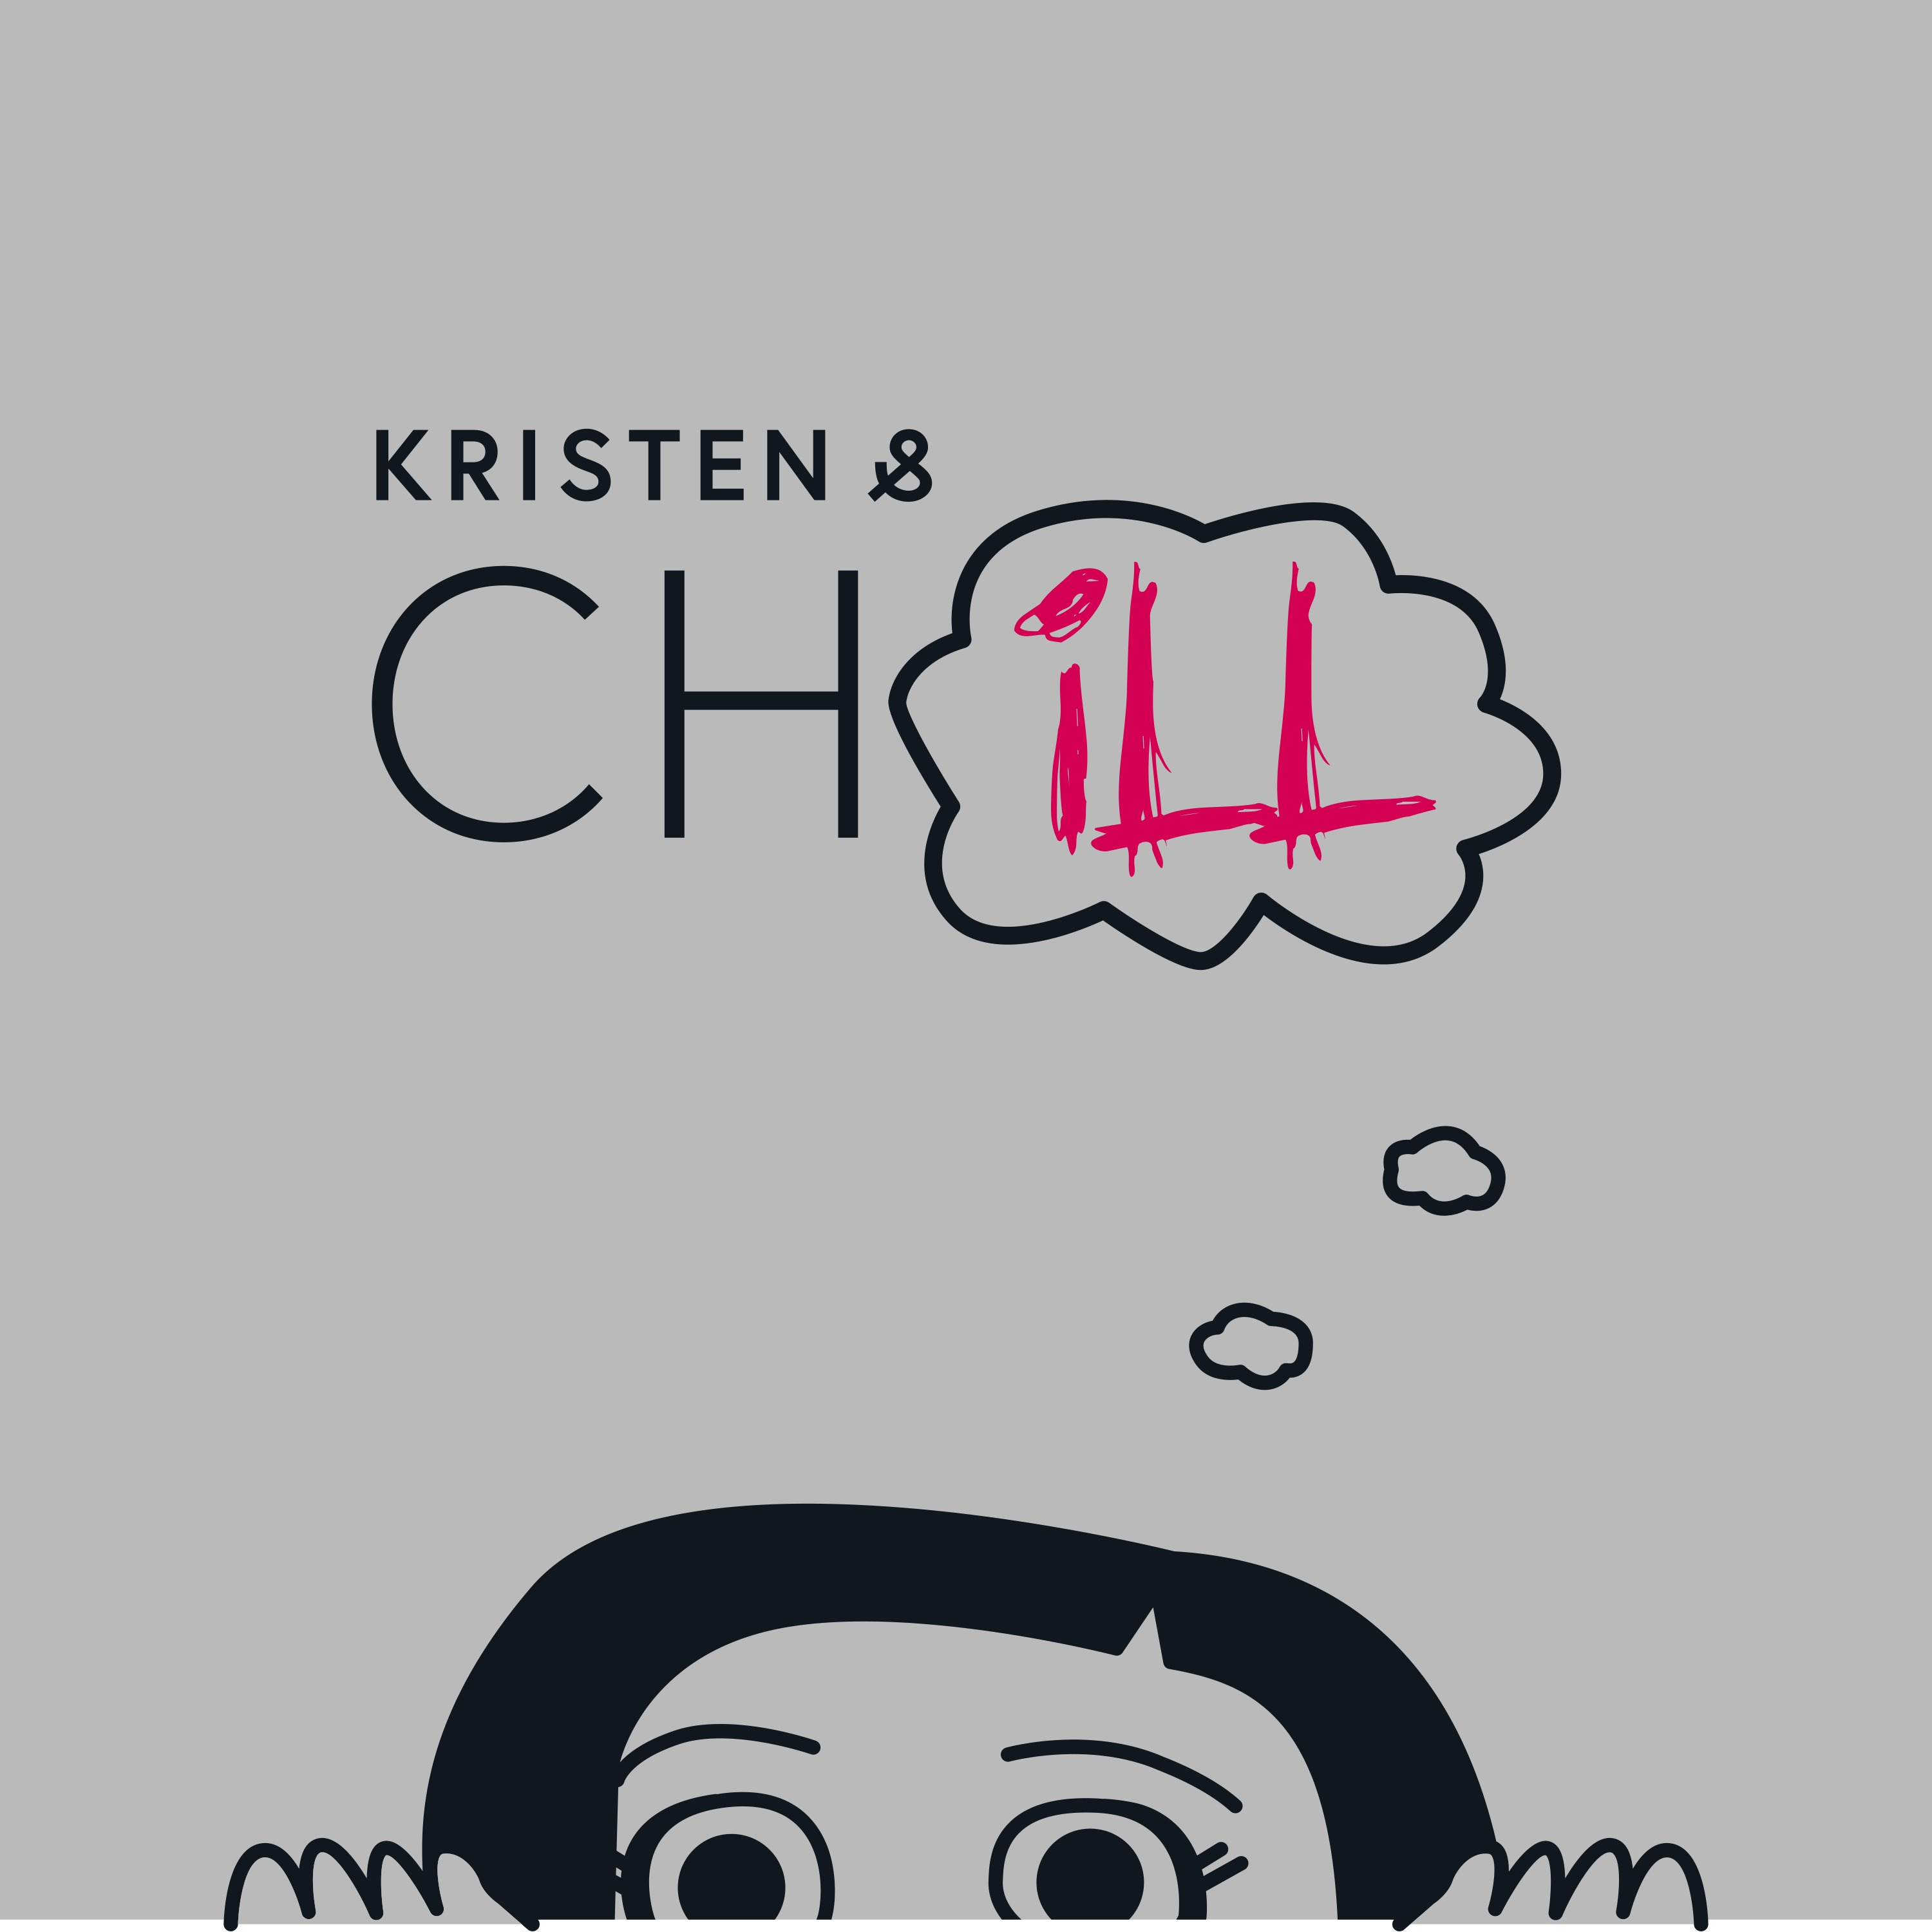 Kristen and Ch(ill)